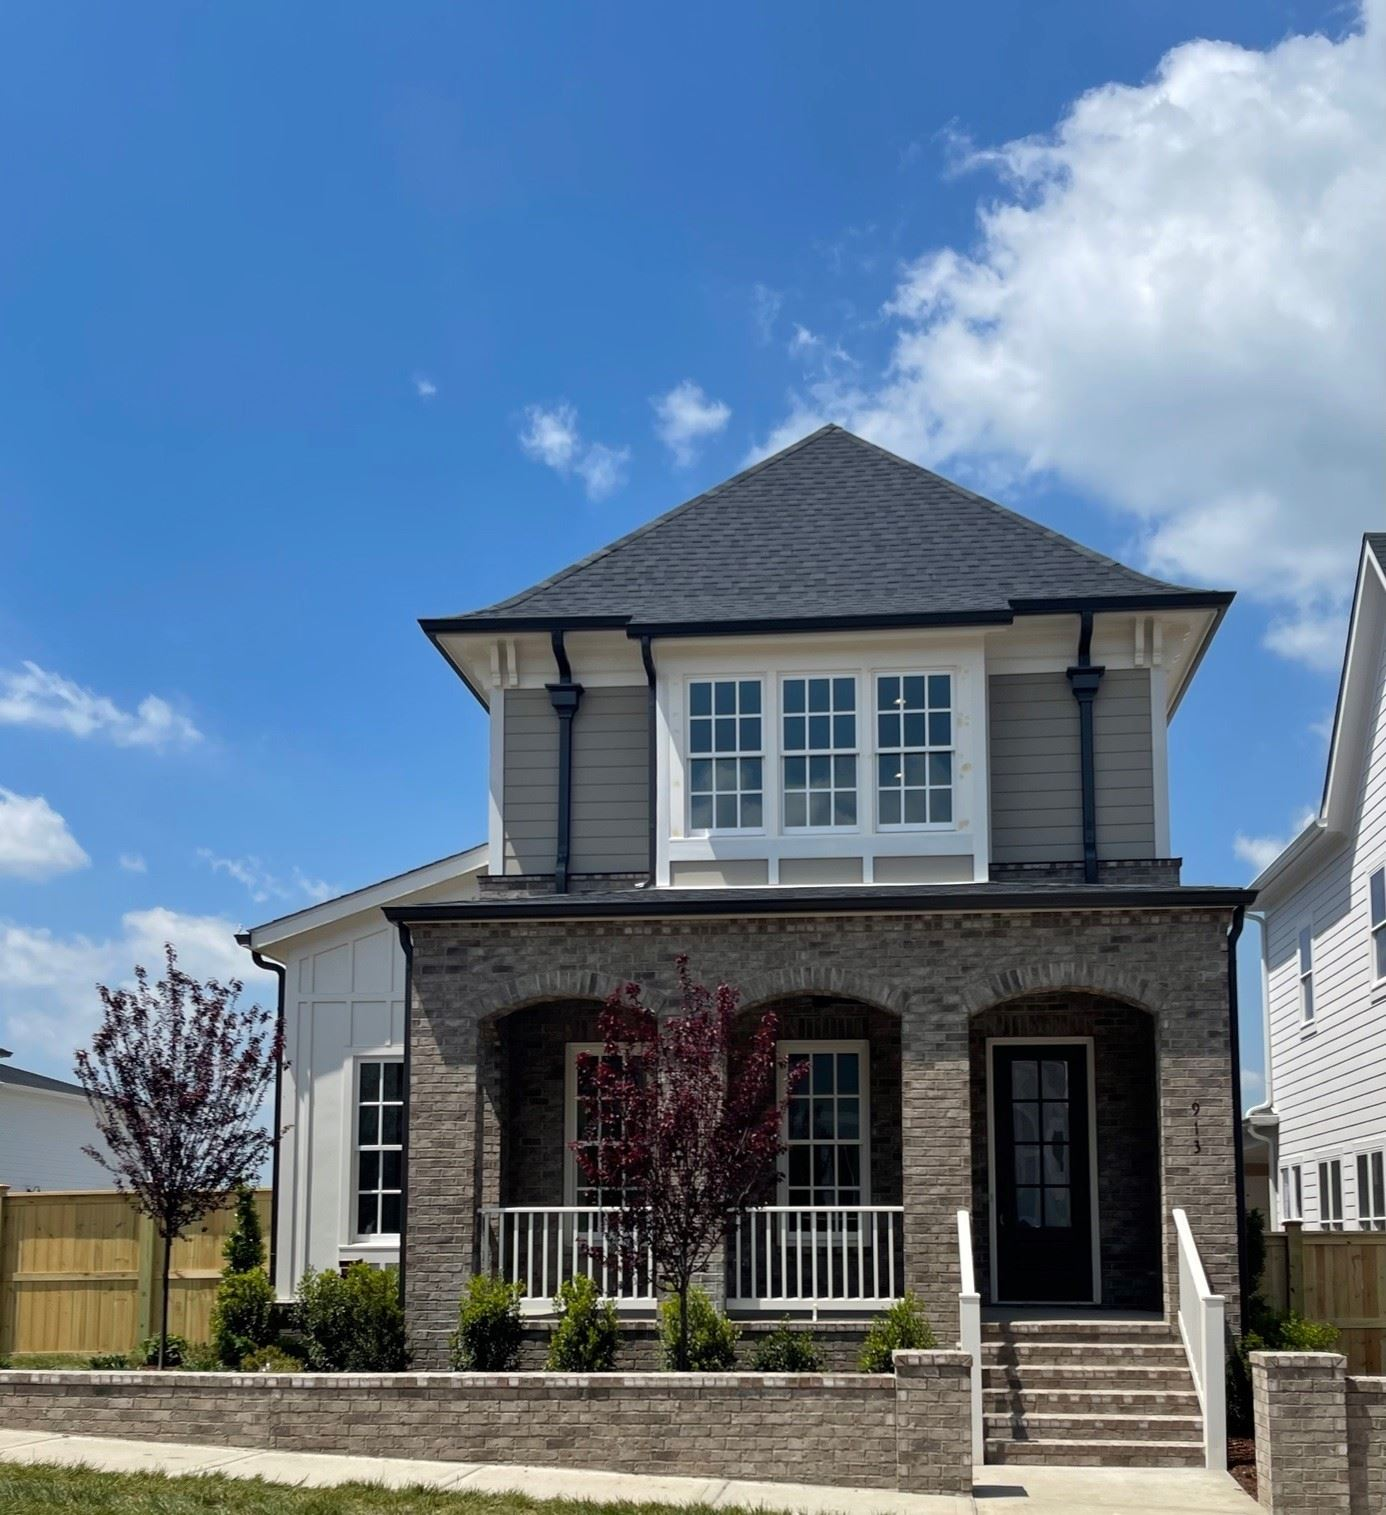 Photo of 913 Horizon Drive, Franklin, TN 37064 (MLS # 2221111)